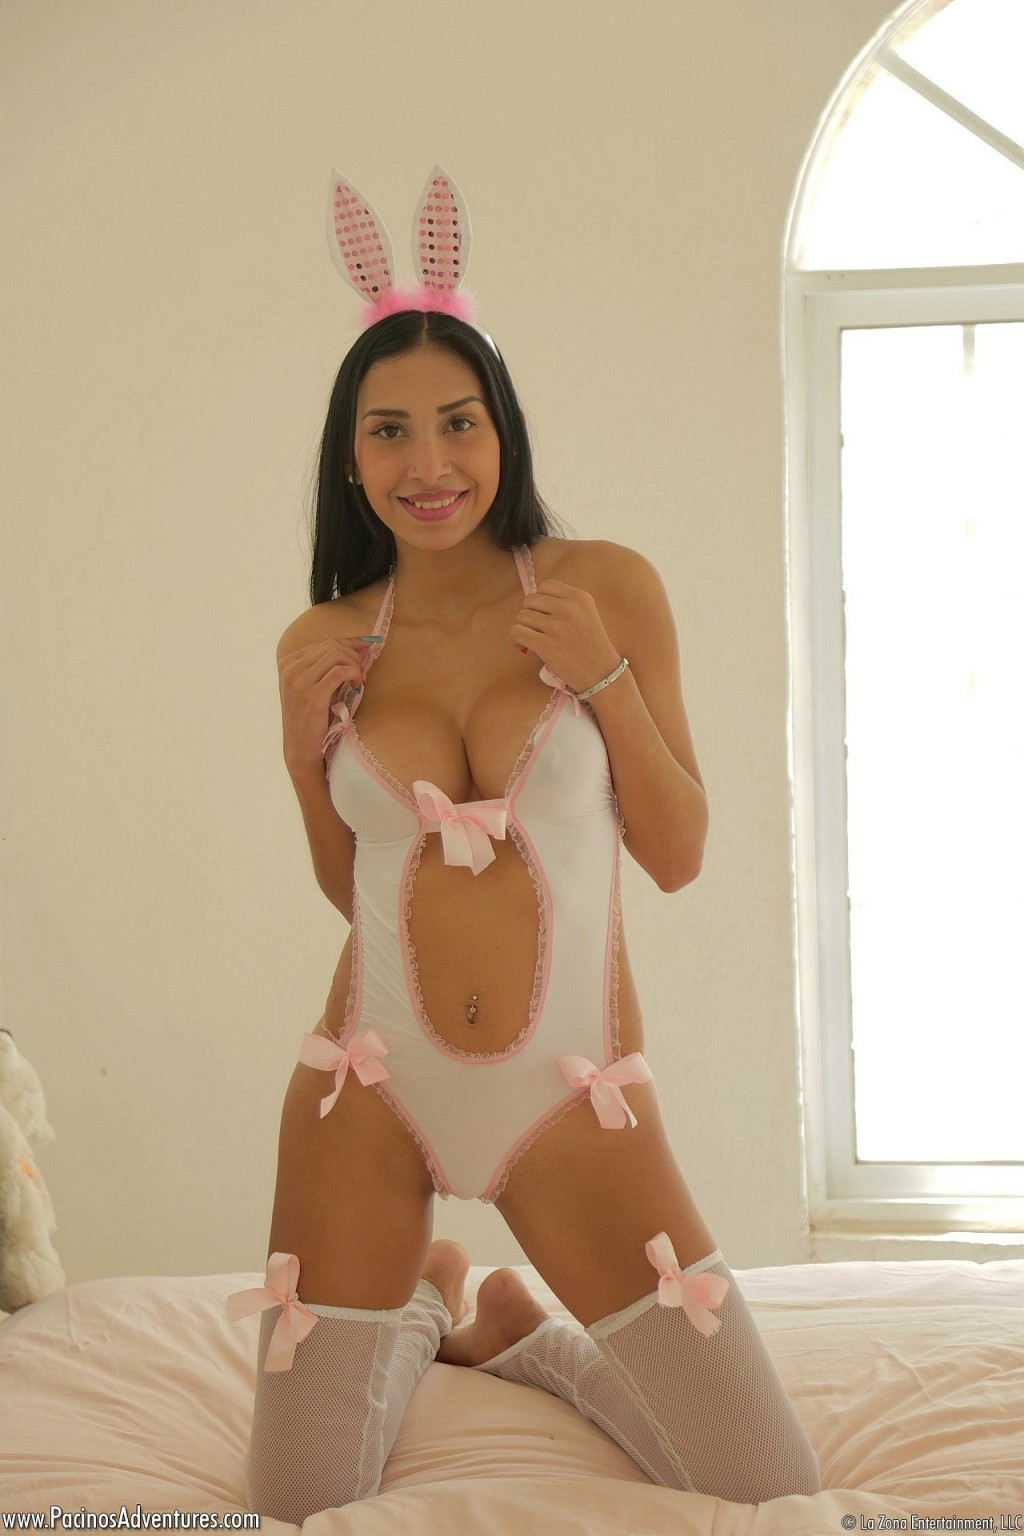 Stunning latin babe franchesca strips off her appealing bunny outfit